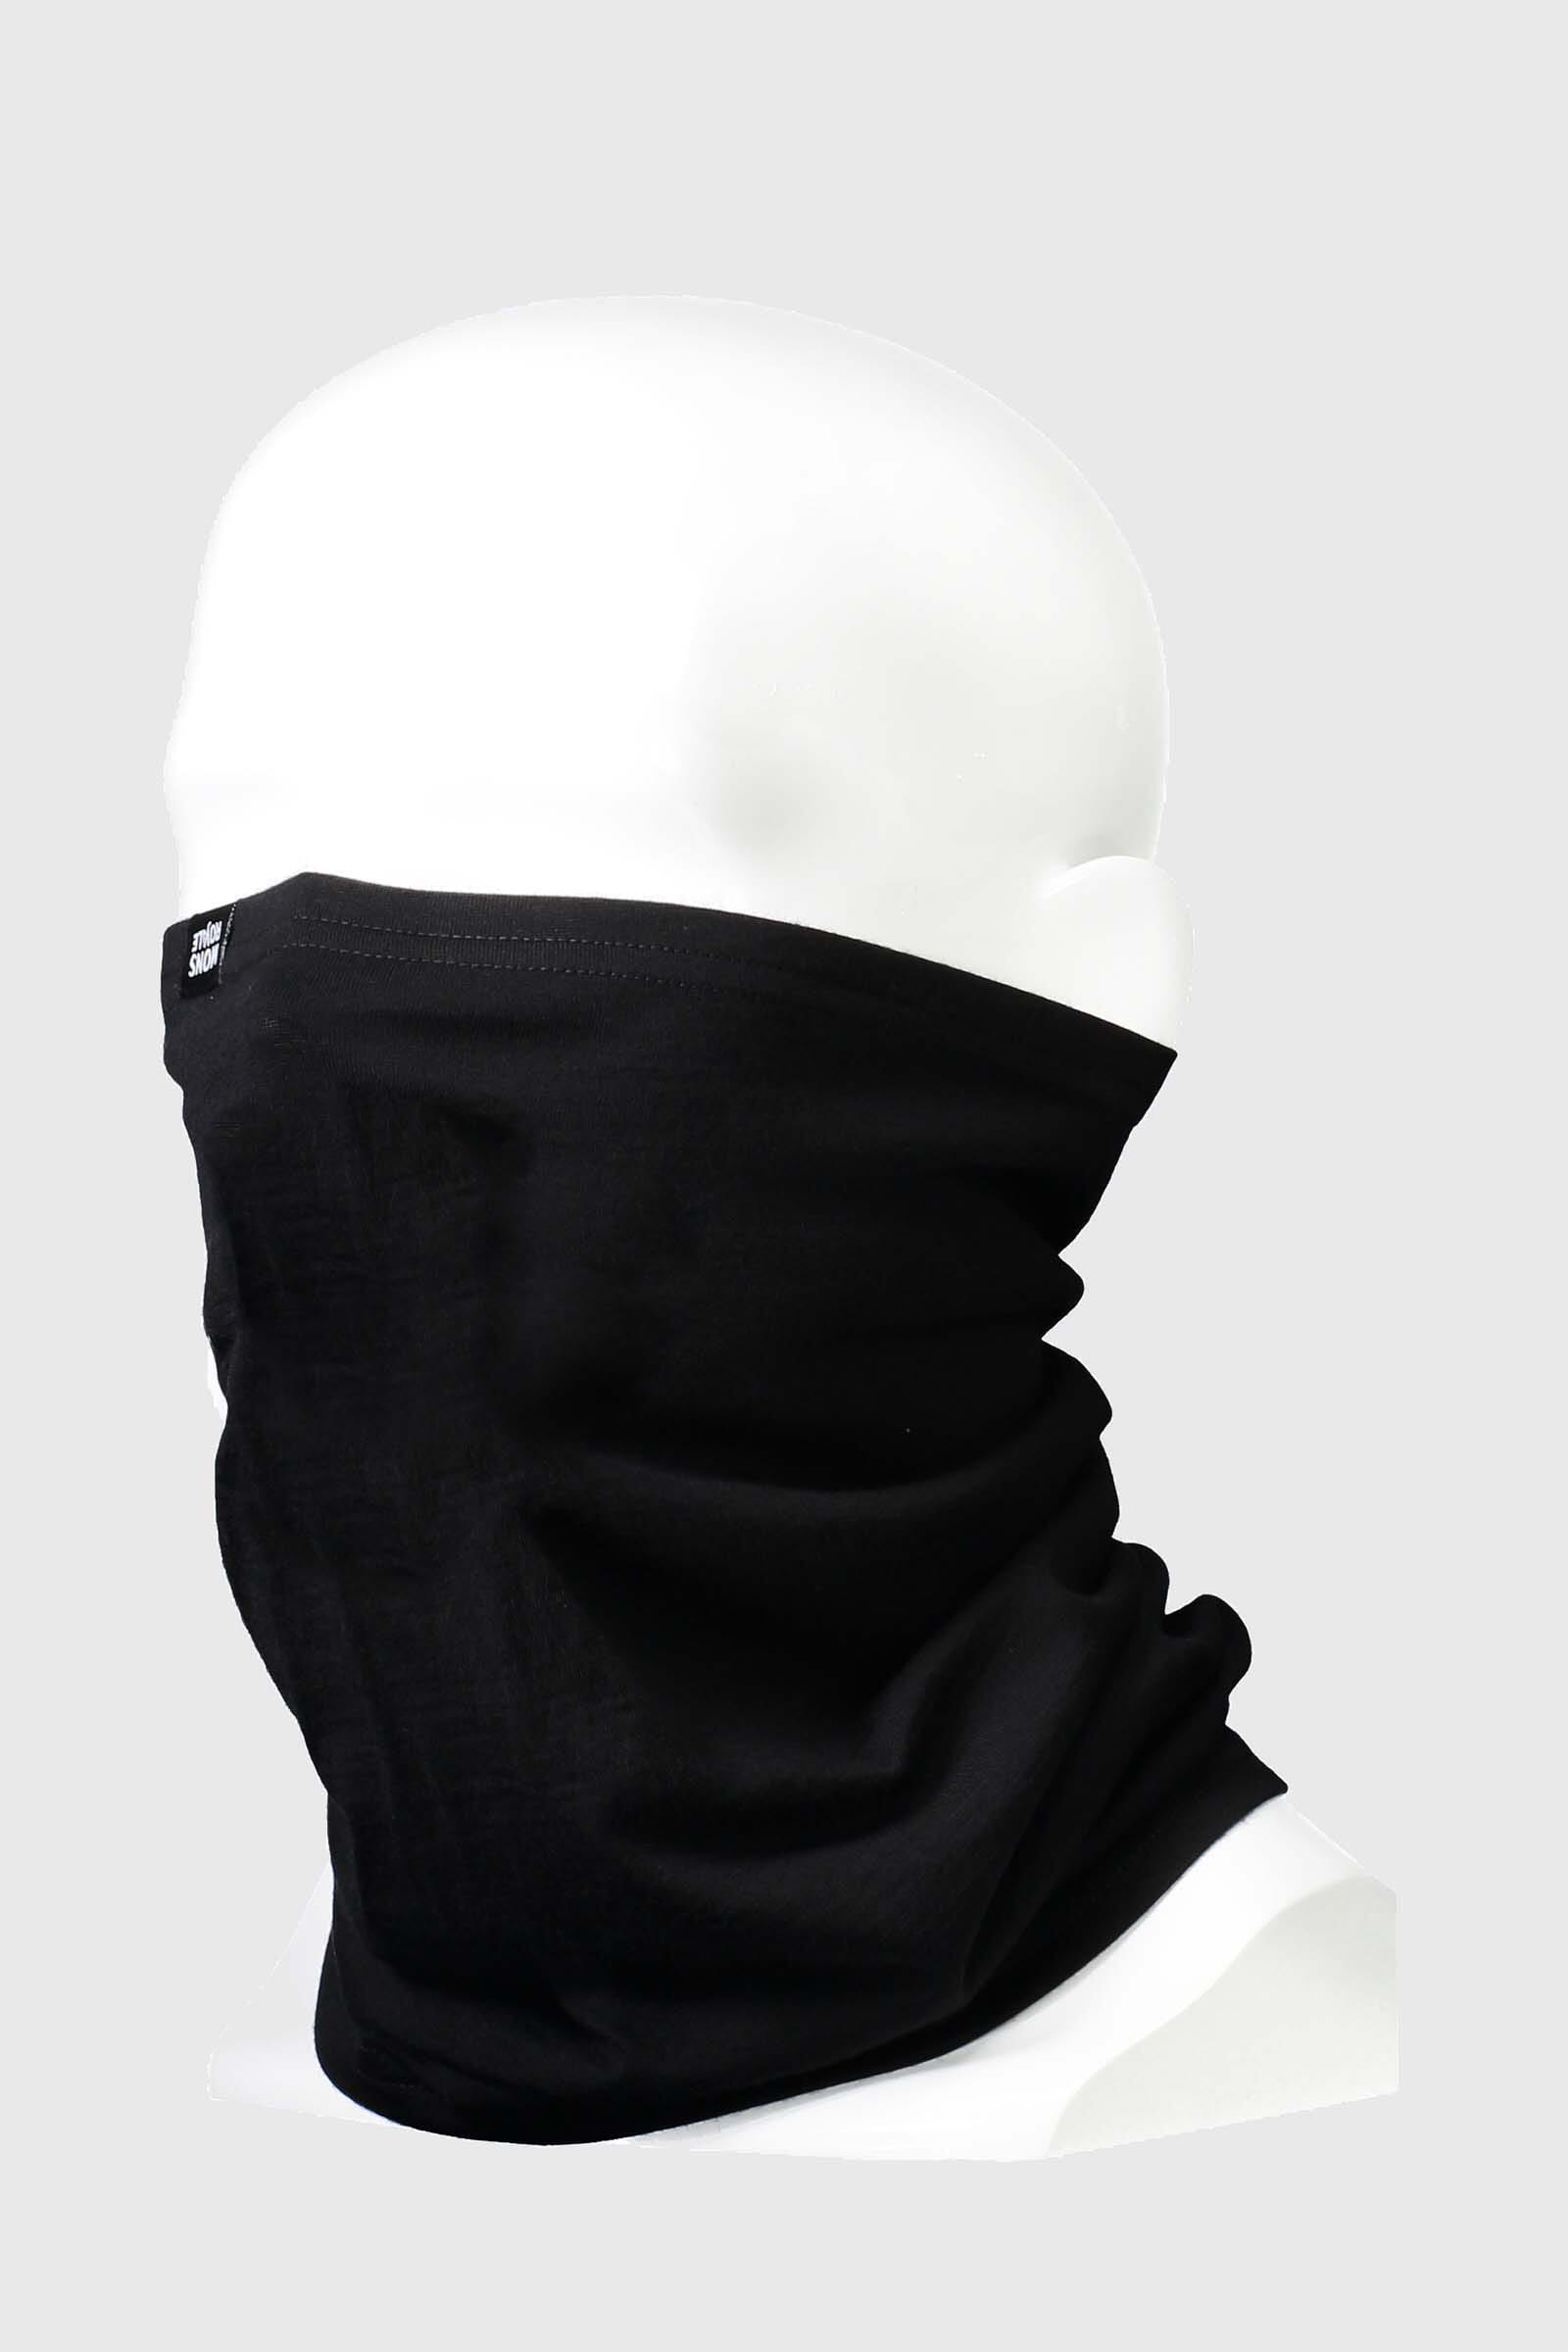 Daily Dose Neckwarmer - Black